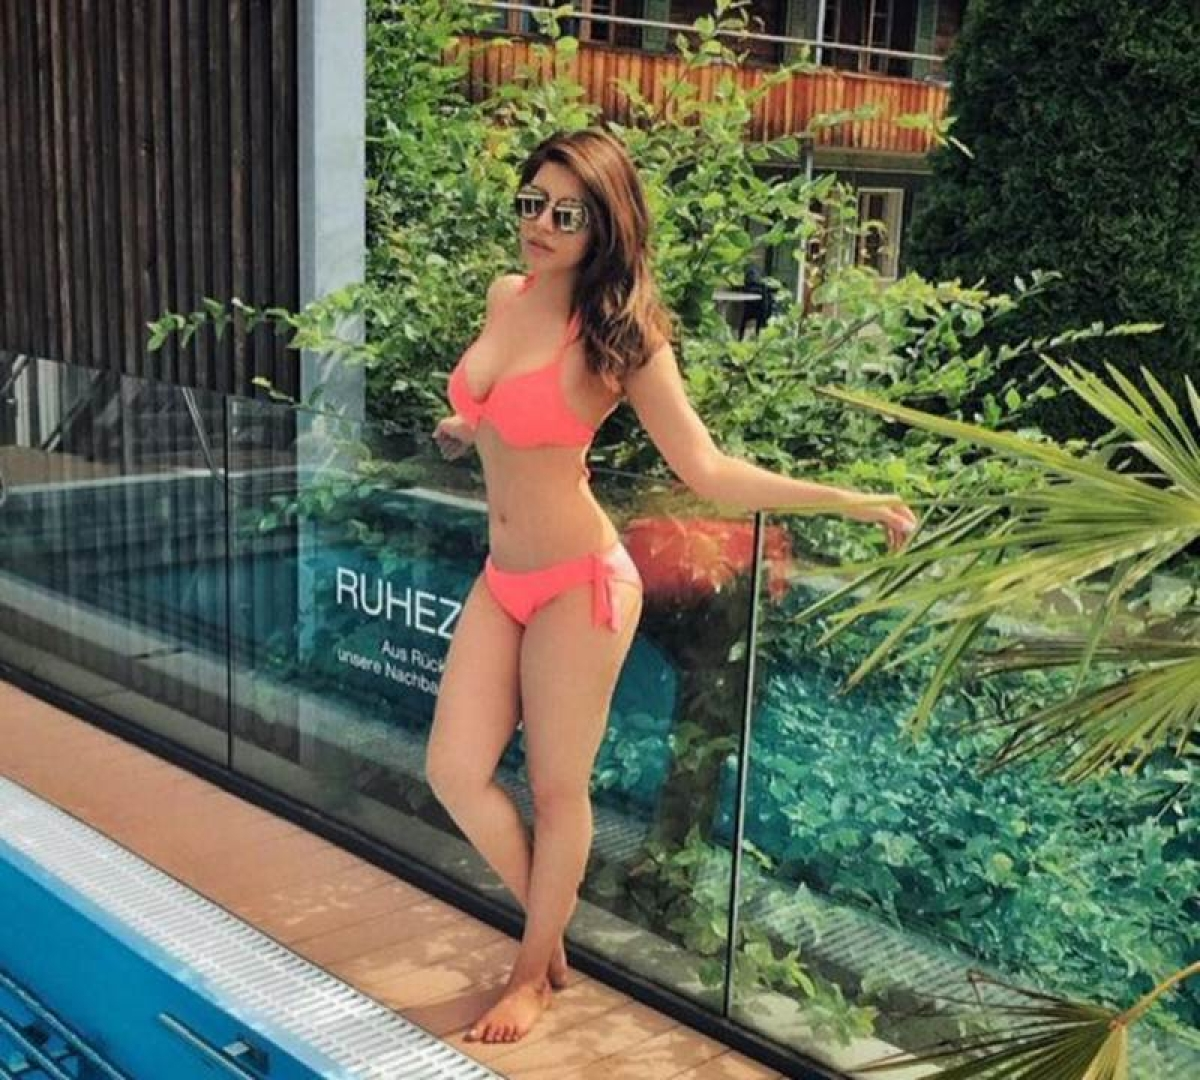 OMG! Shama Sikander looks extremely hot and sensuous in her pink bikini